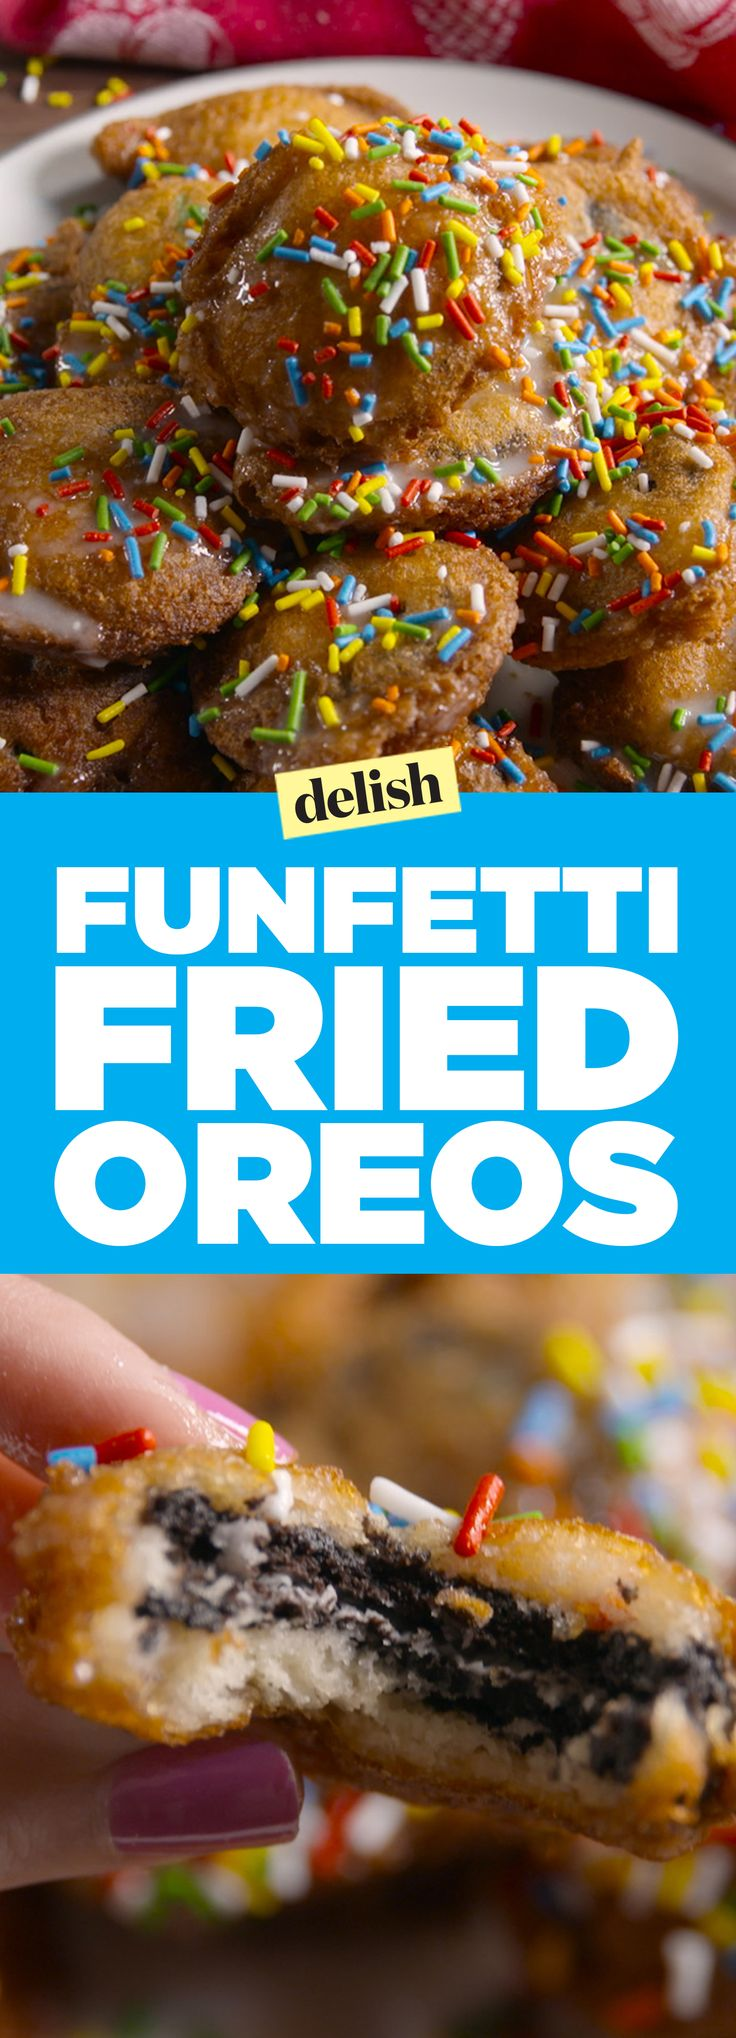 Funfetti fried Oreos will take your party from 0 to 100 real quick. Get the recipe on Delish.com.